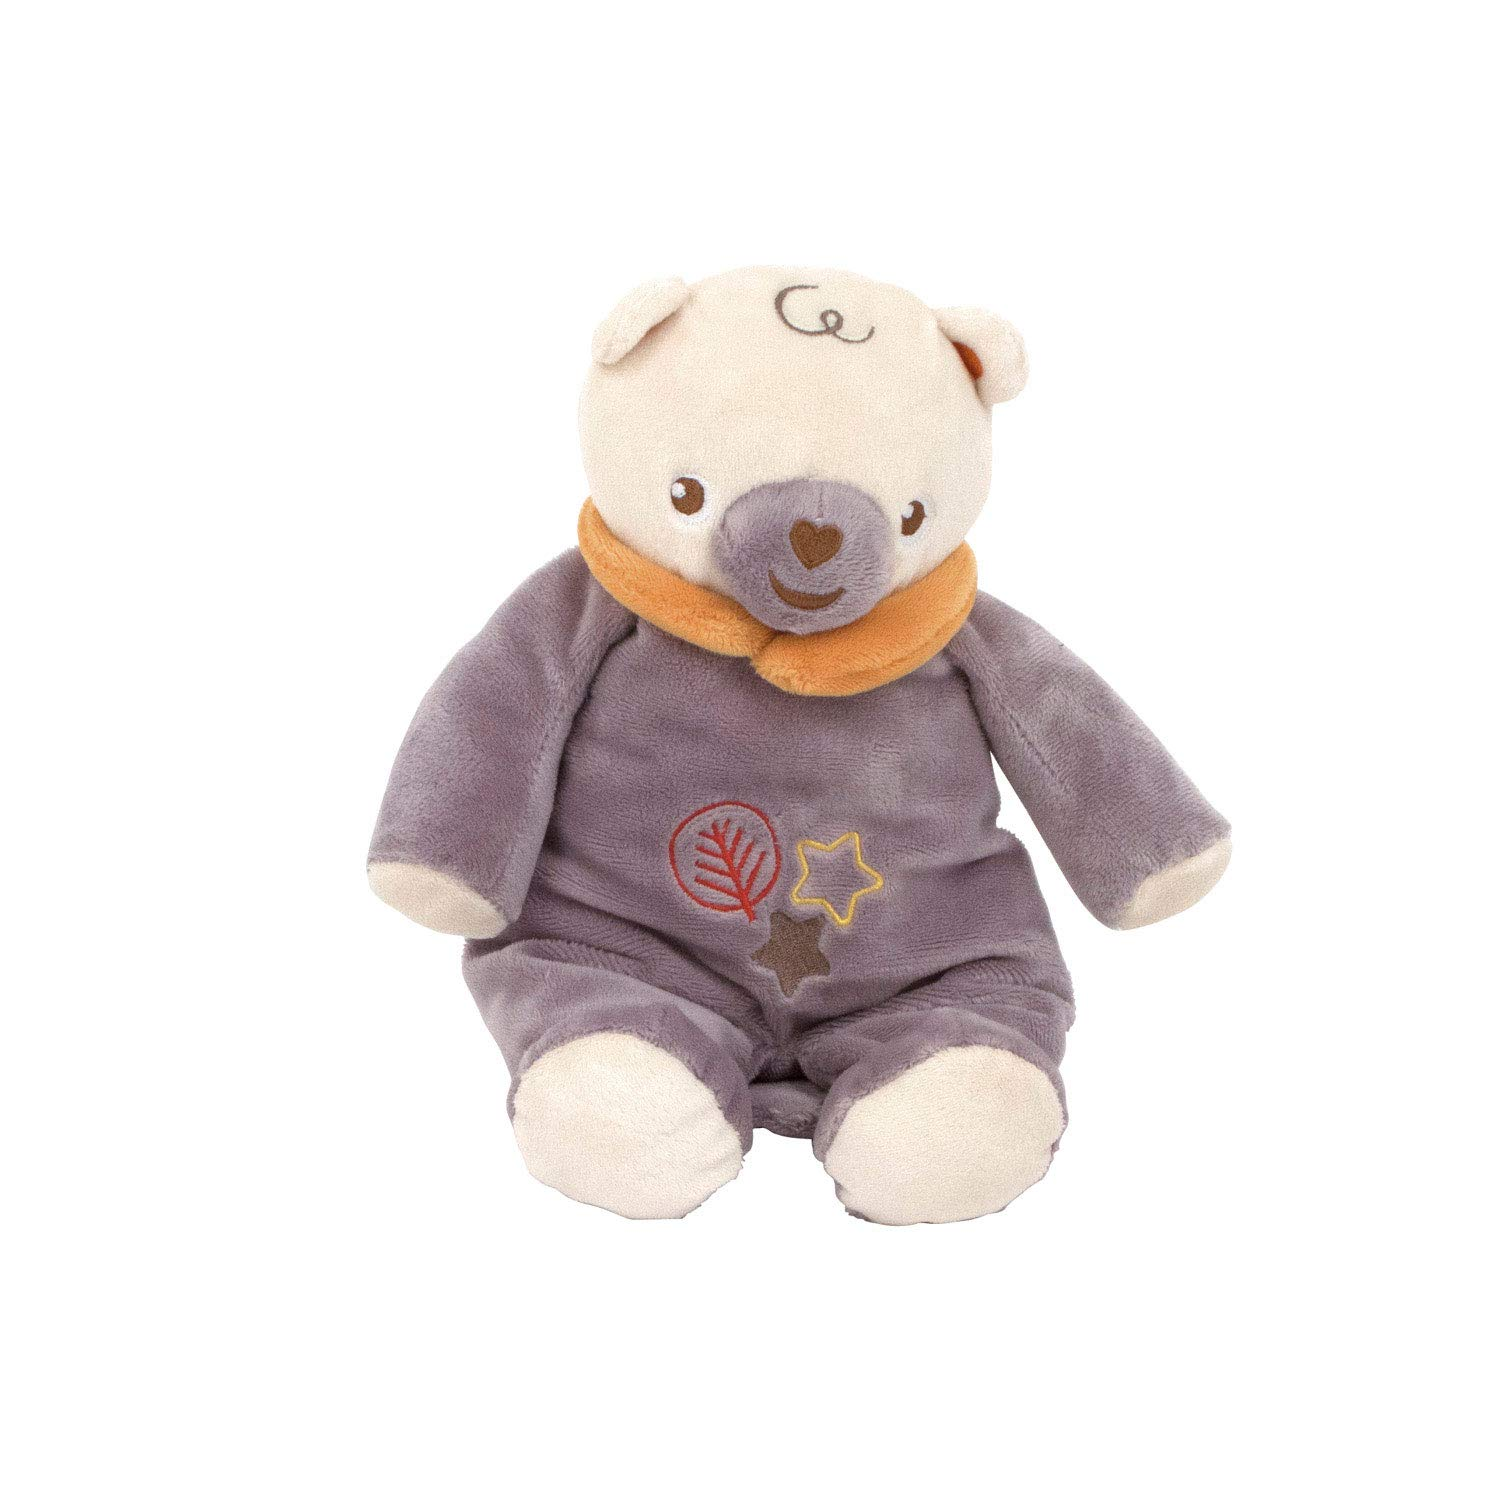 Arditex FP10104 Seated Bear with Rattle Plush Toy, Multi-Colour, 28 cm